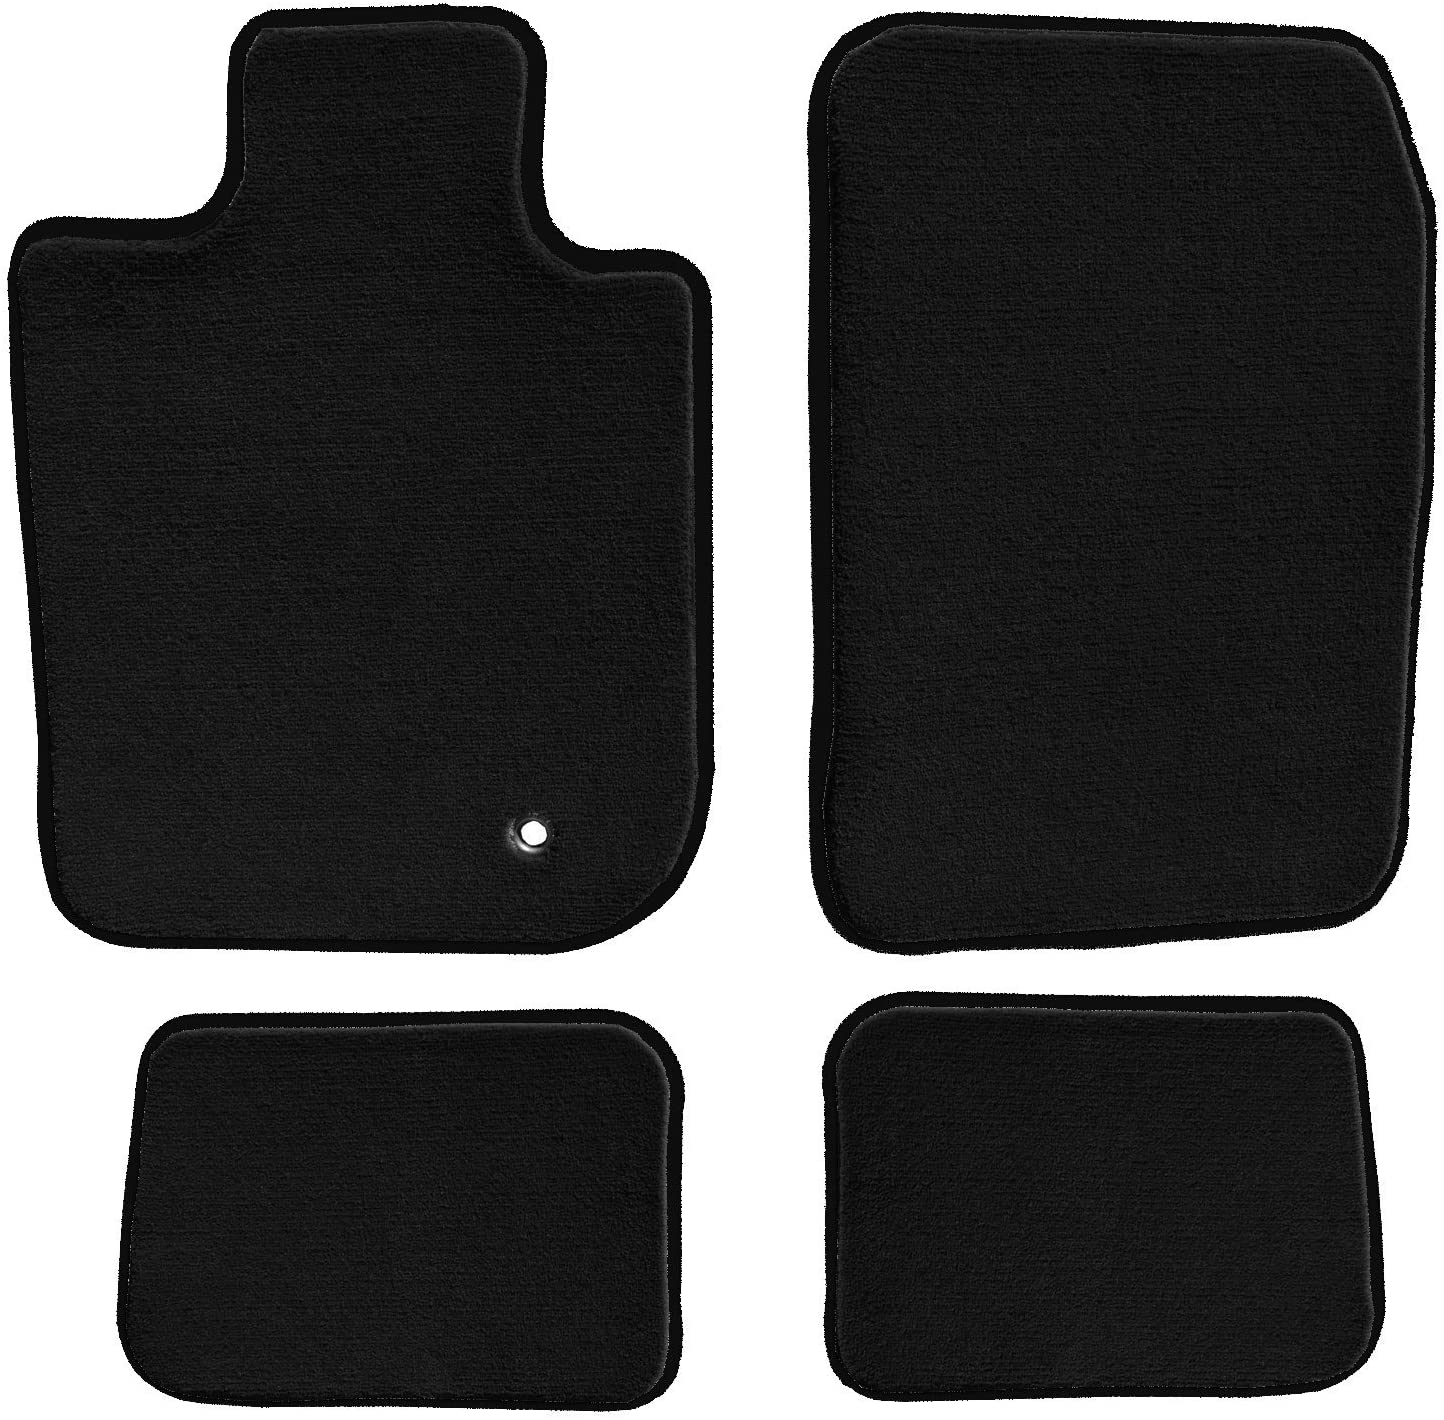 2006 Passenger /& Rear Floor Mats GGBAILEY Ford Freestyle 2005 2007 Black Loop Driver